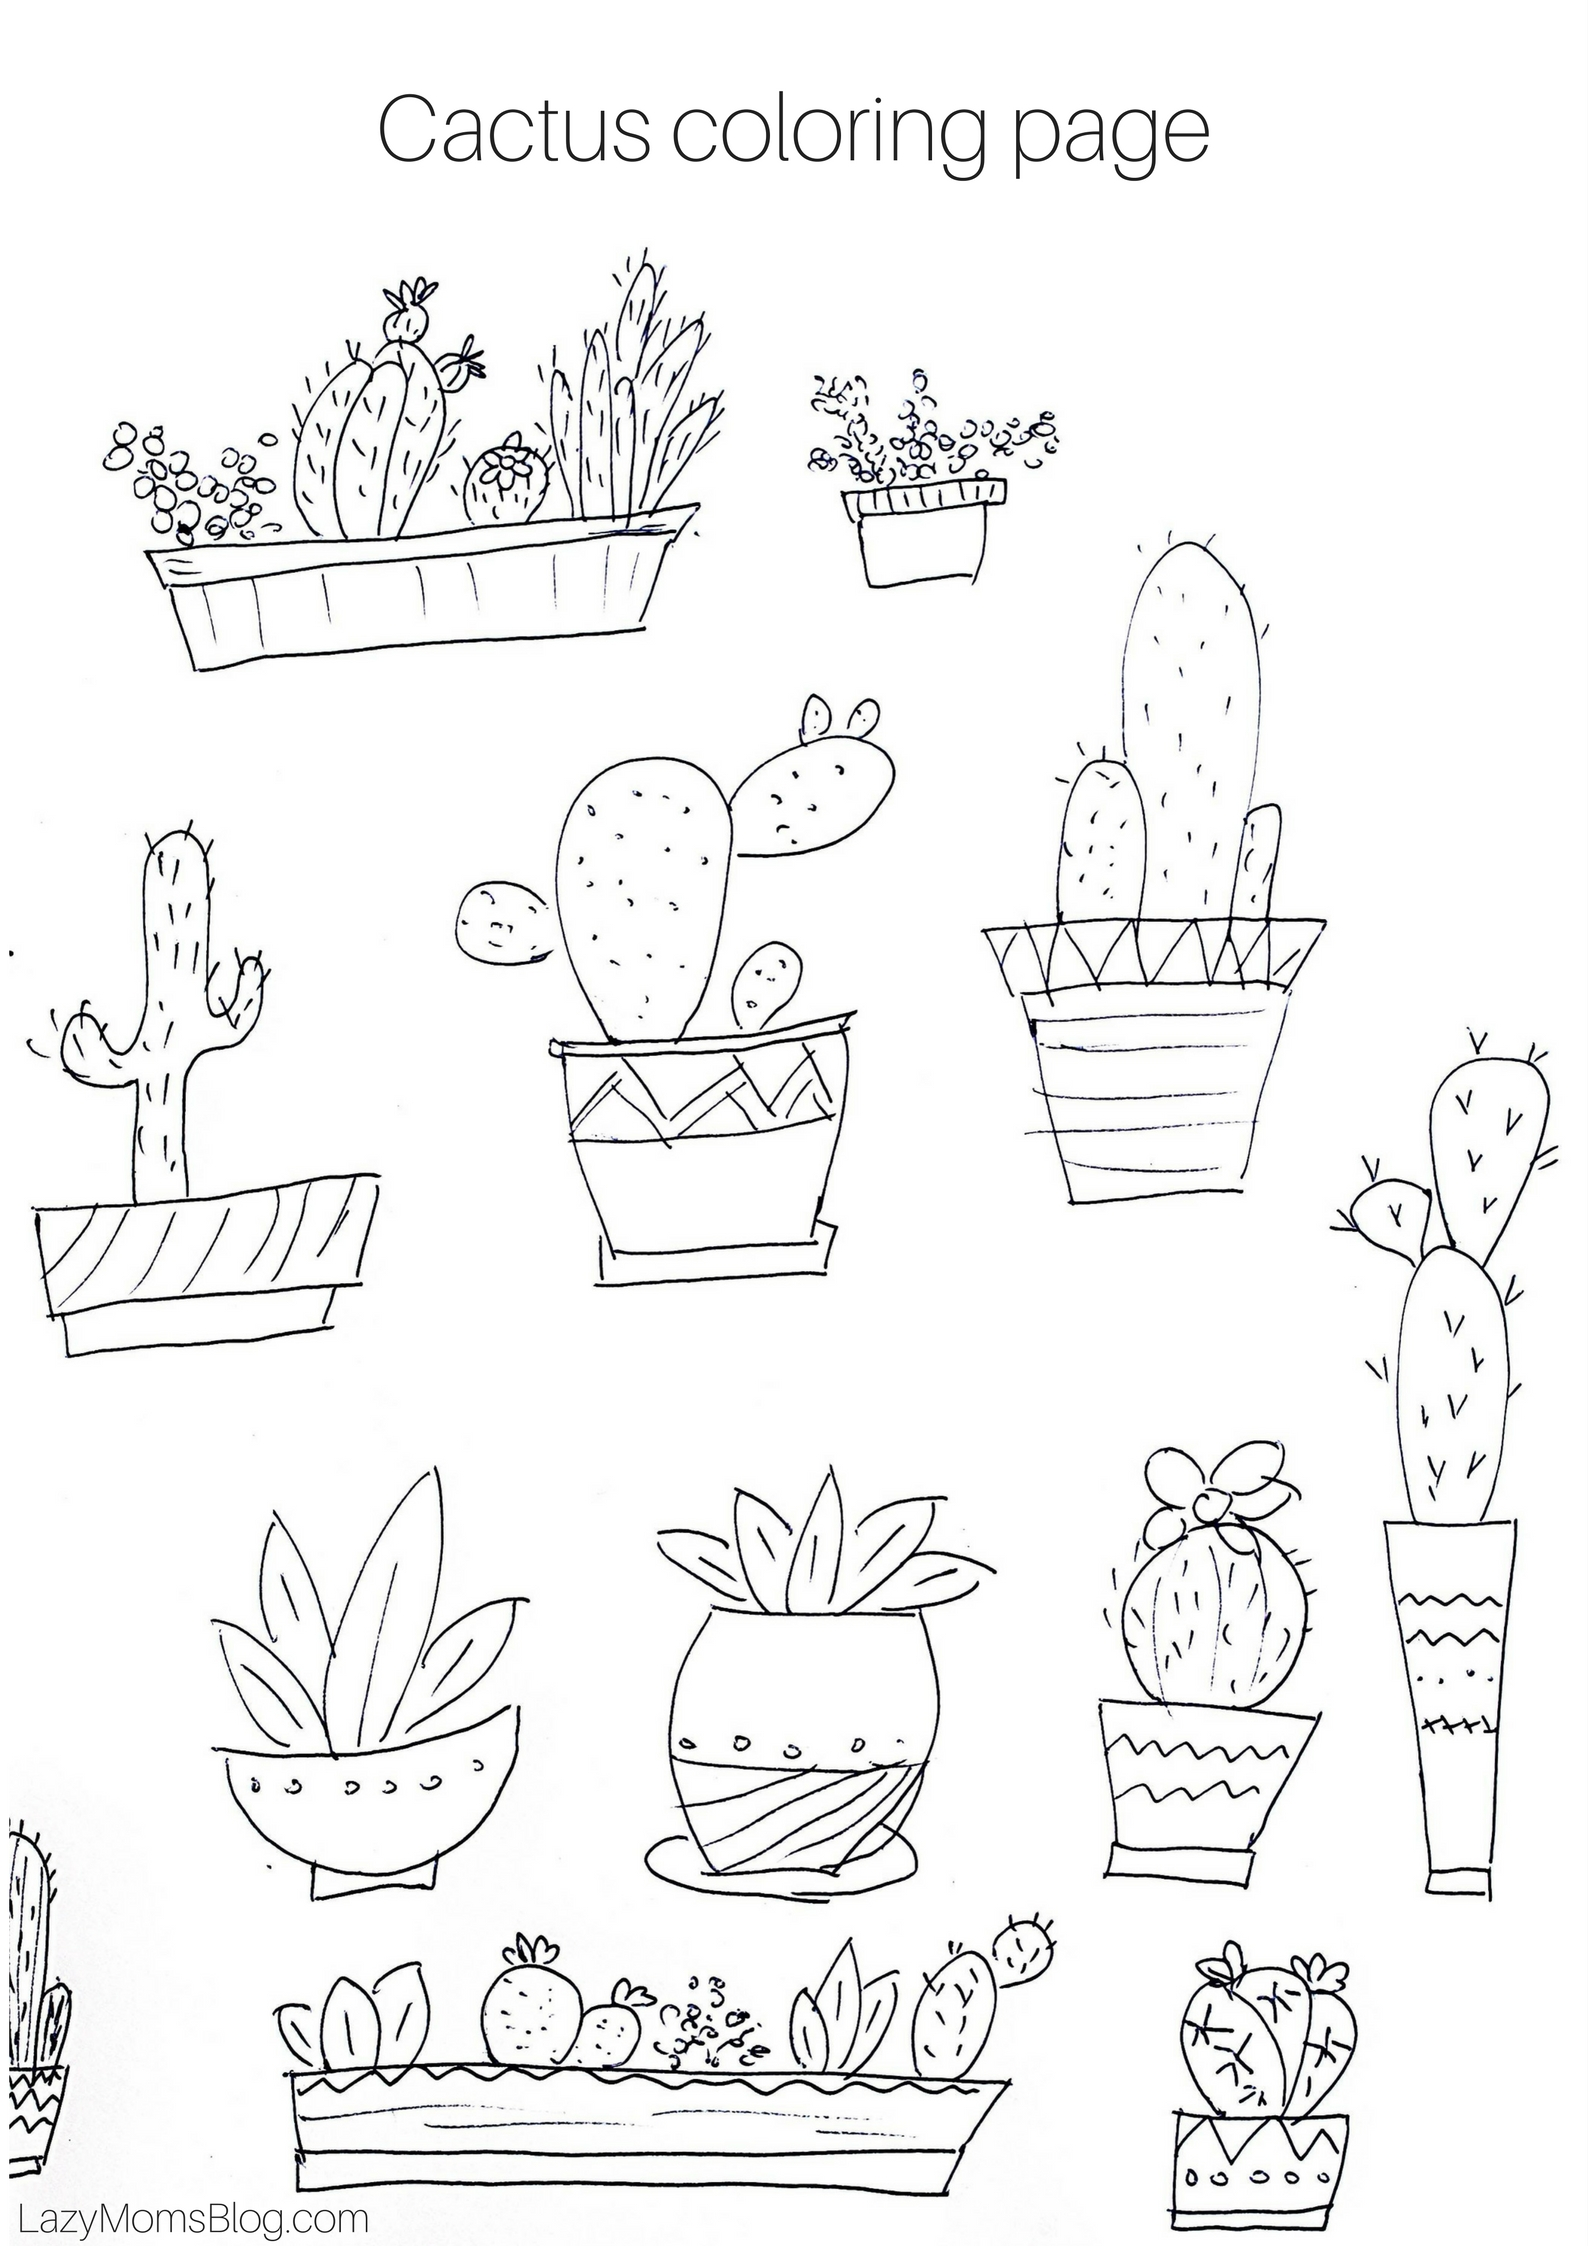 Can you afford a spring adventure lazy mom 39 s blog for Cactus coloring pages